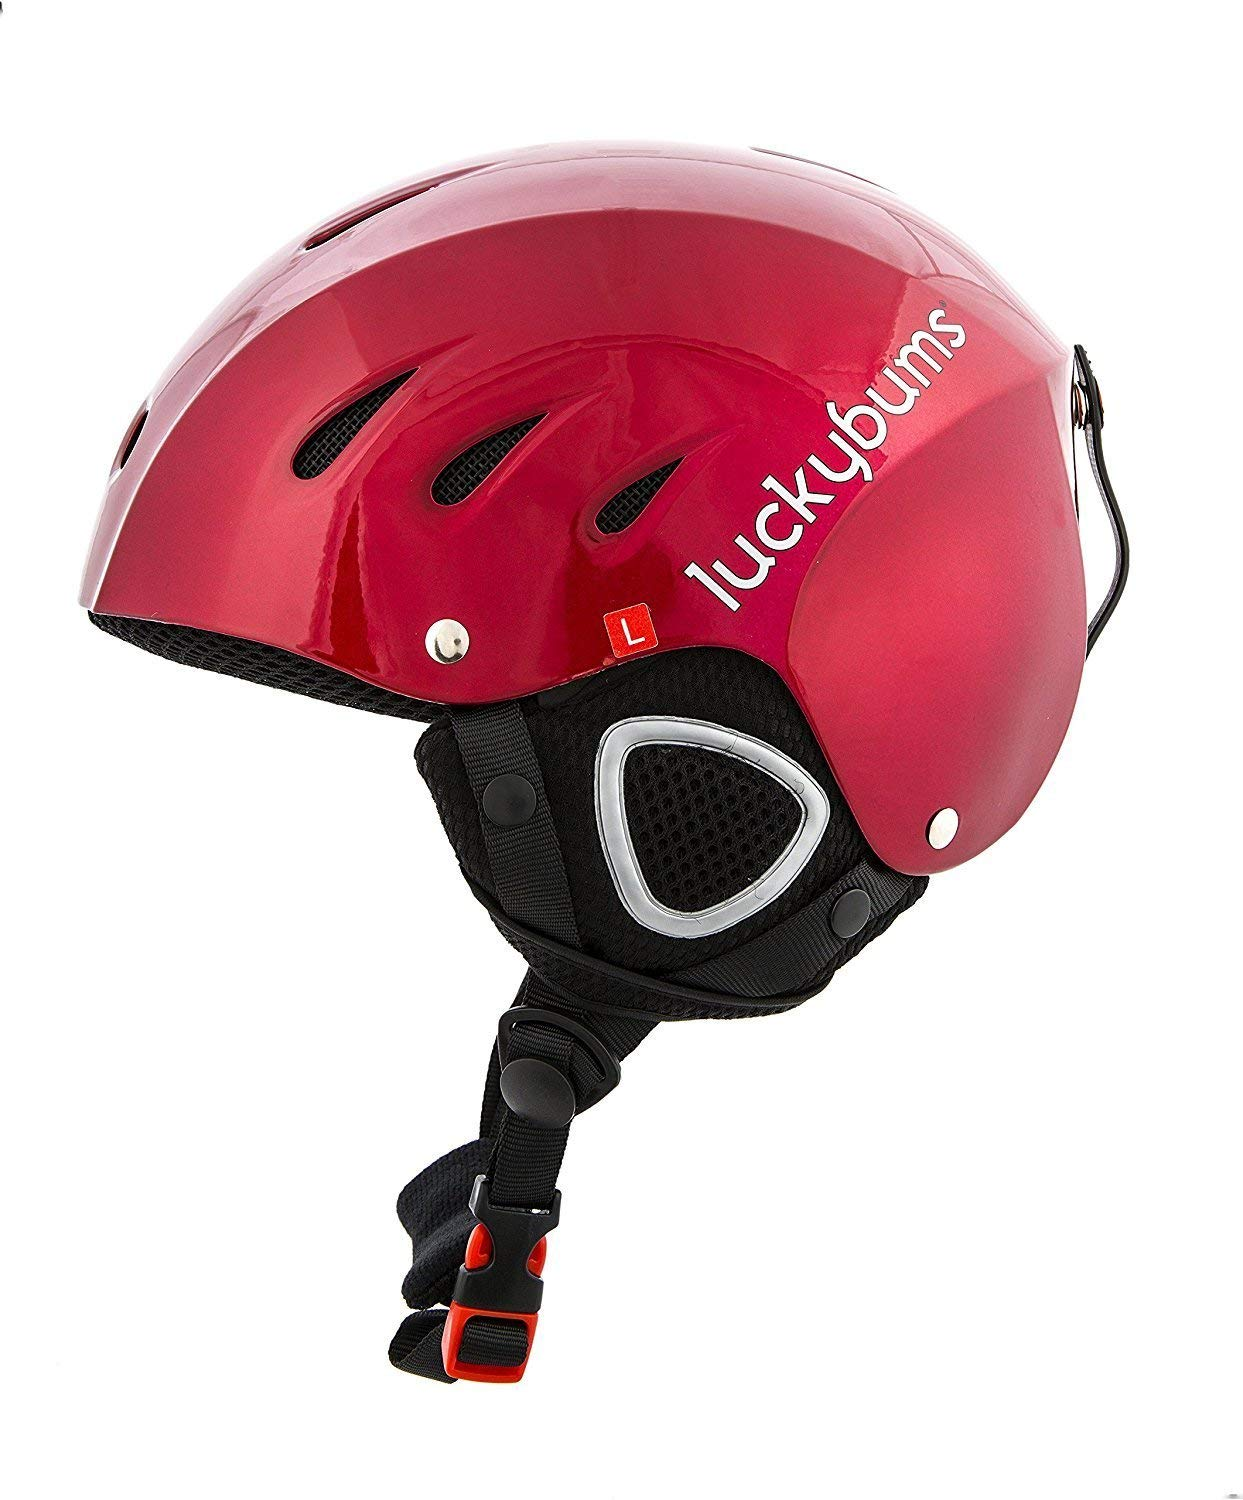 Lucky Bum Adult Snow Ski Helmet, Multiple Sizes and Colors